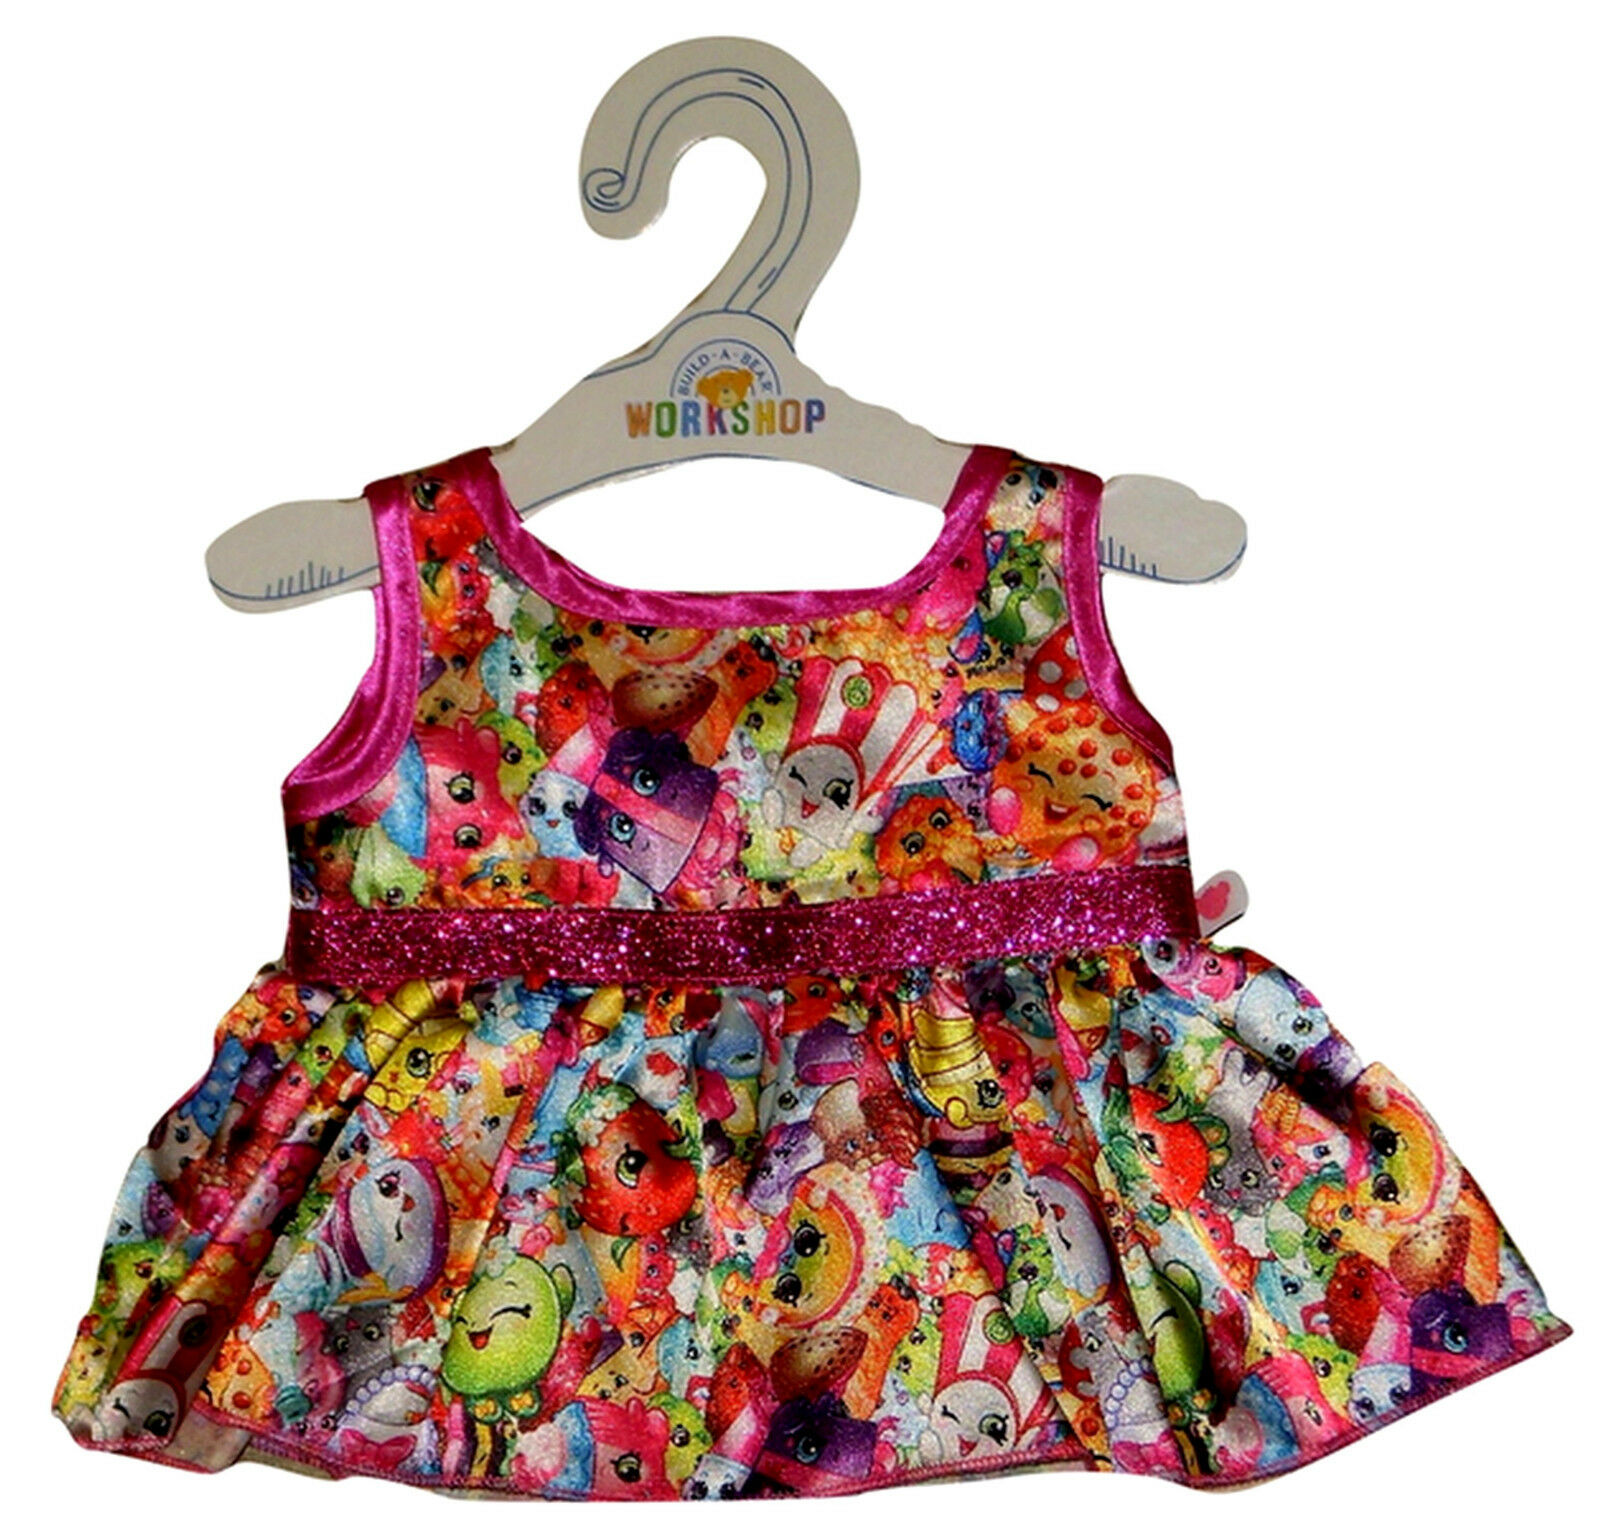 build a bear shopkins character dress teddy doll size outfit ebay